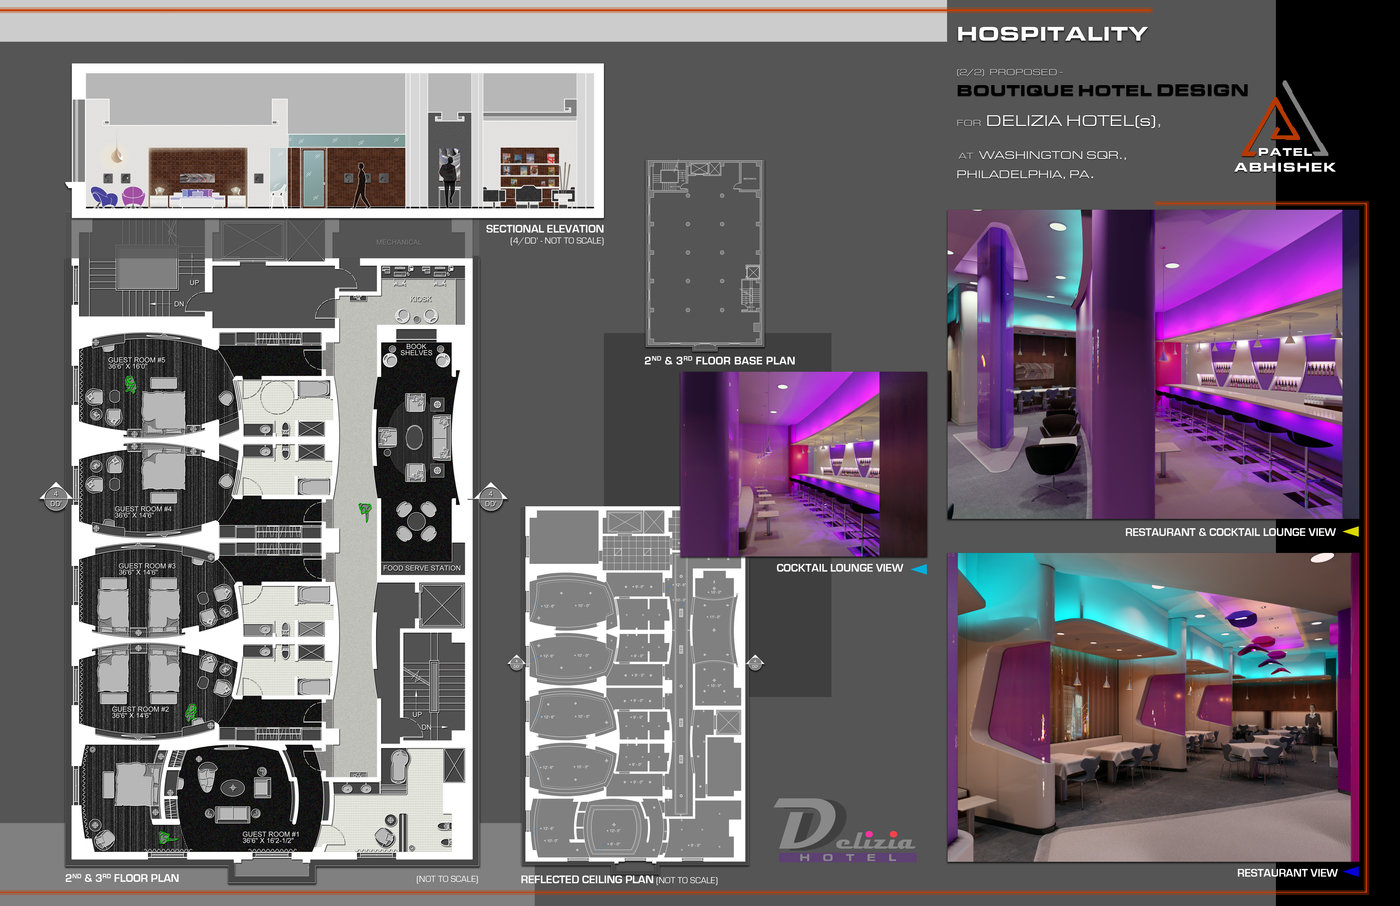 Interior architecture design portfolio sample by for Concept hotel boutique